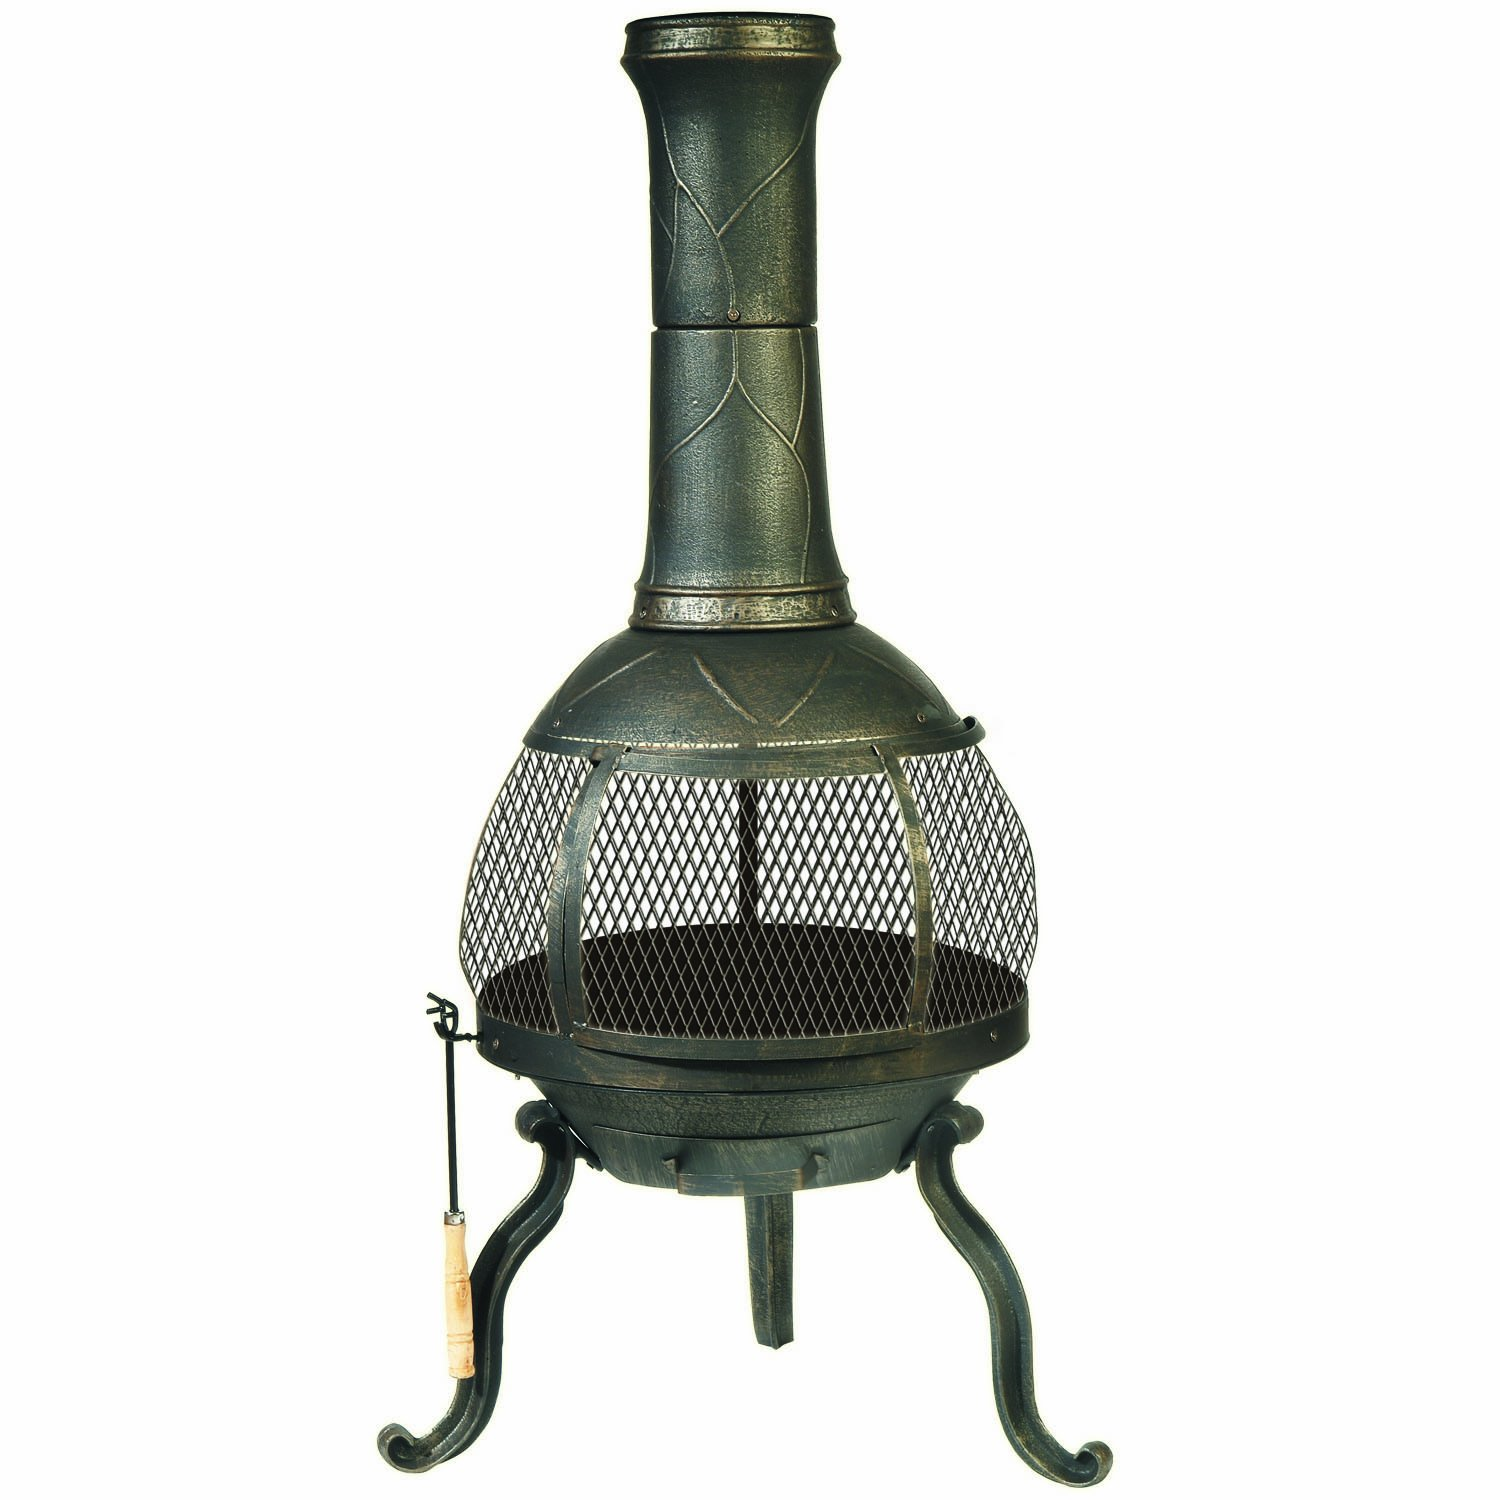 Best Cast Iron Chiminea Outdoor Fireplace Outdoor Fire